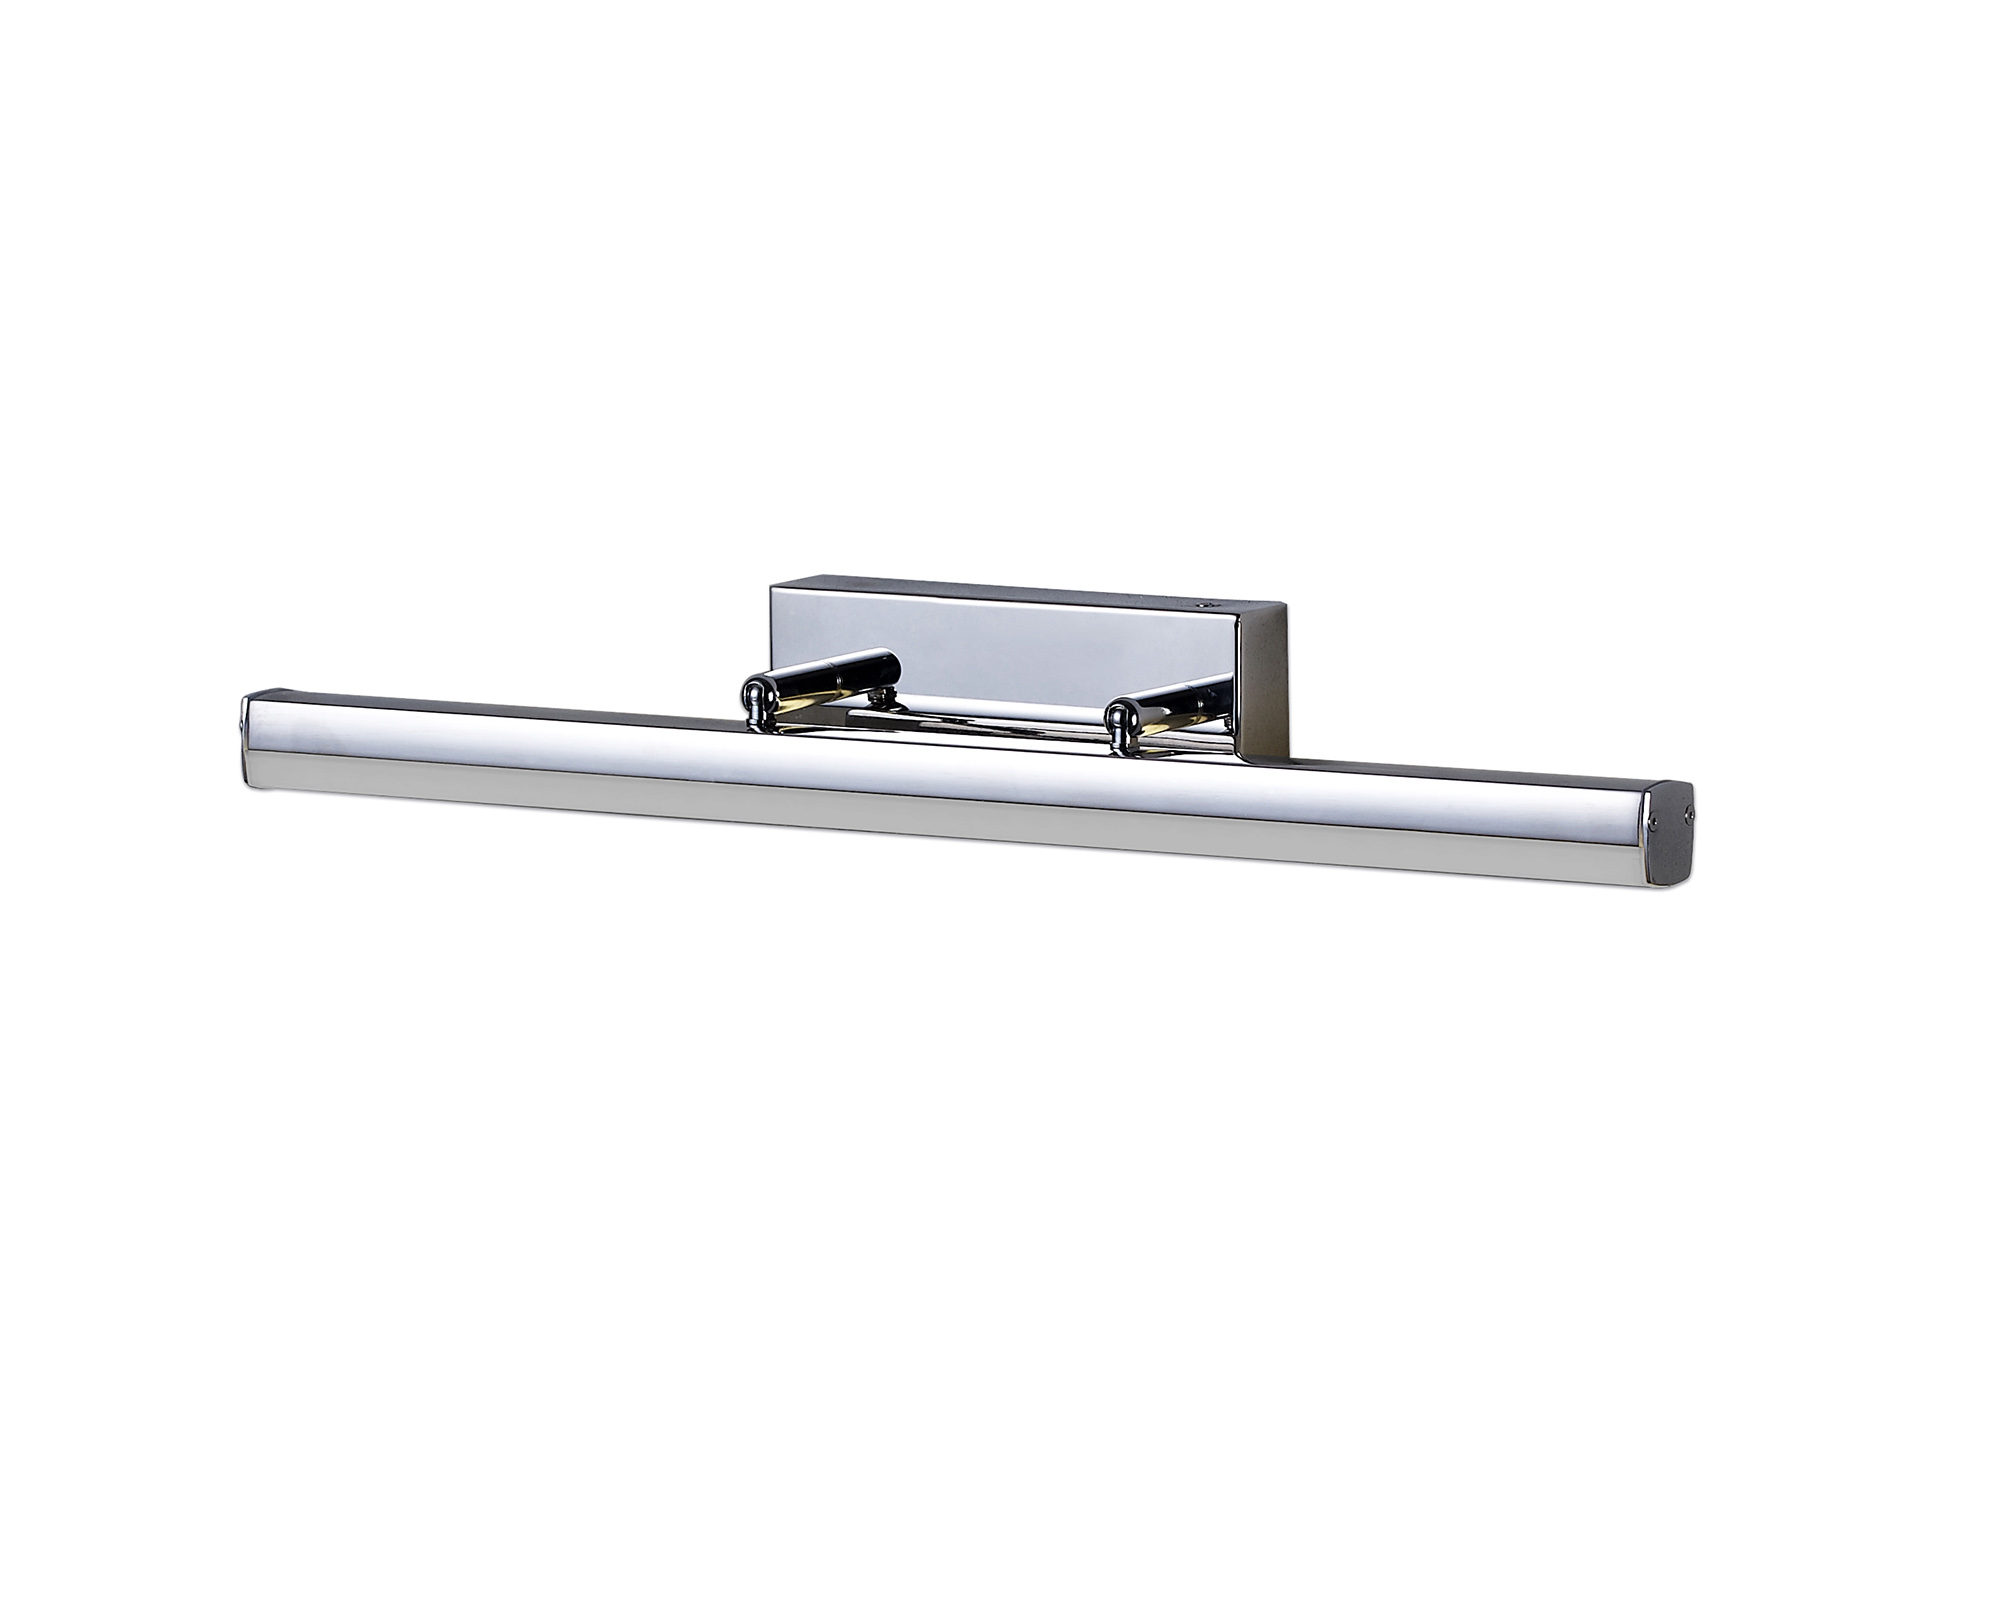 Wall Lamp Small Adjustable, 1 x 6W LED, 4000K, 612lm, IP44, Polished Chrome, 3yrs Warranty